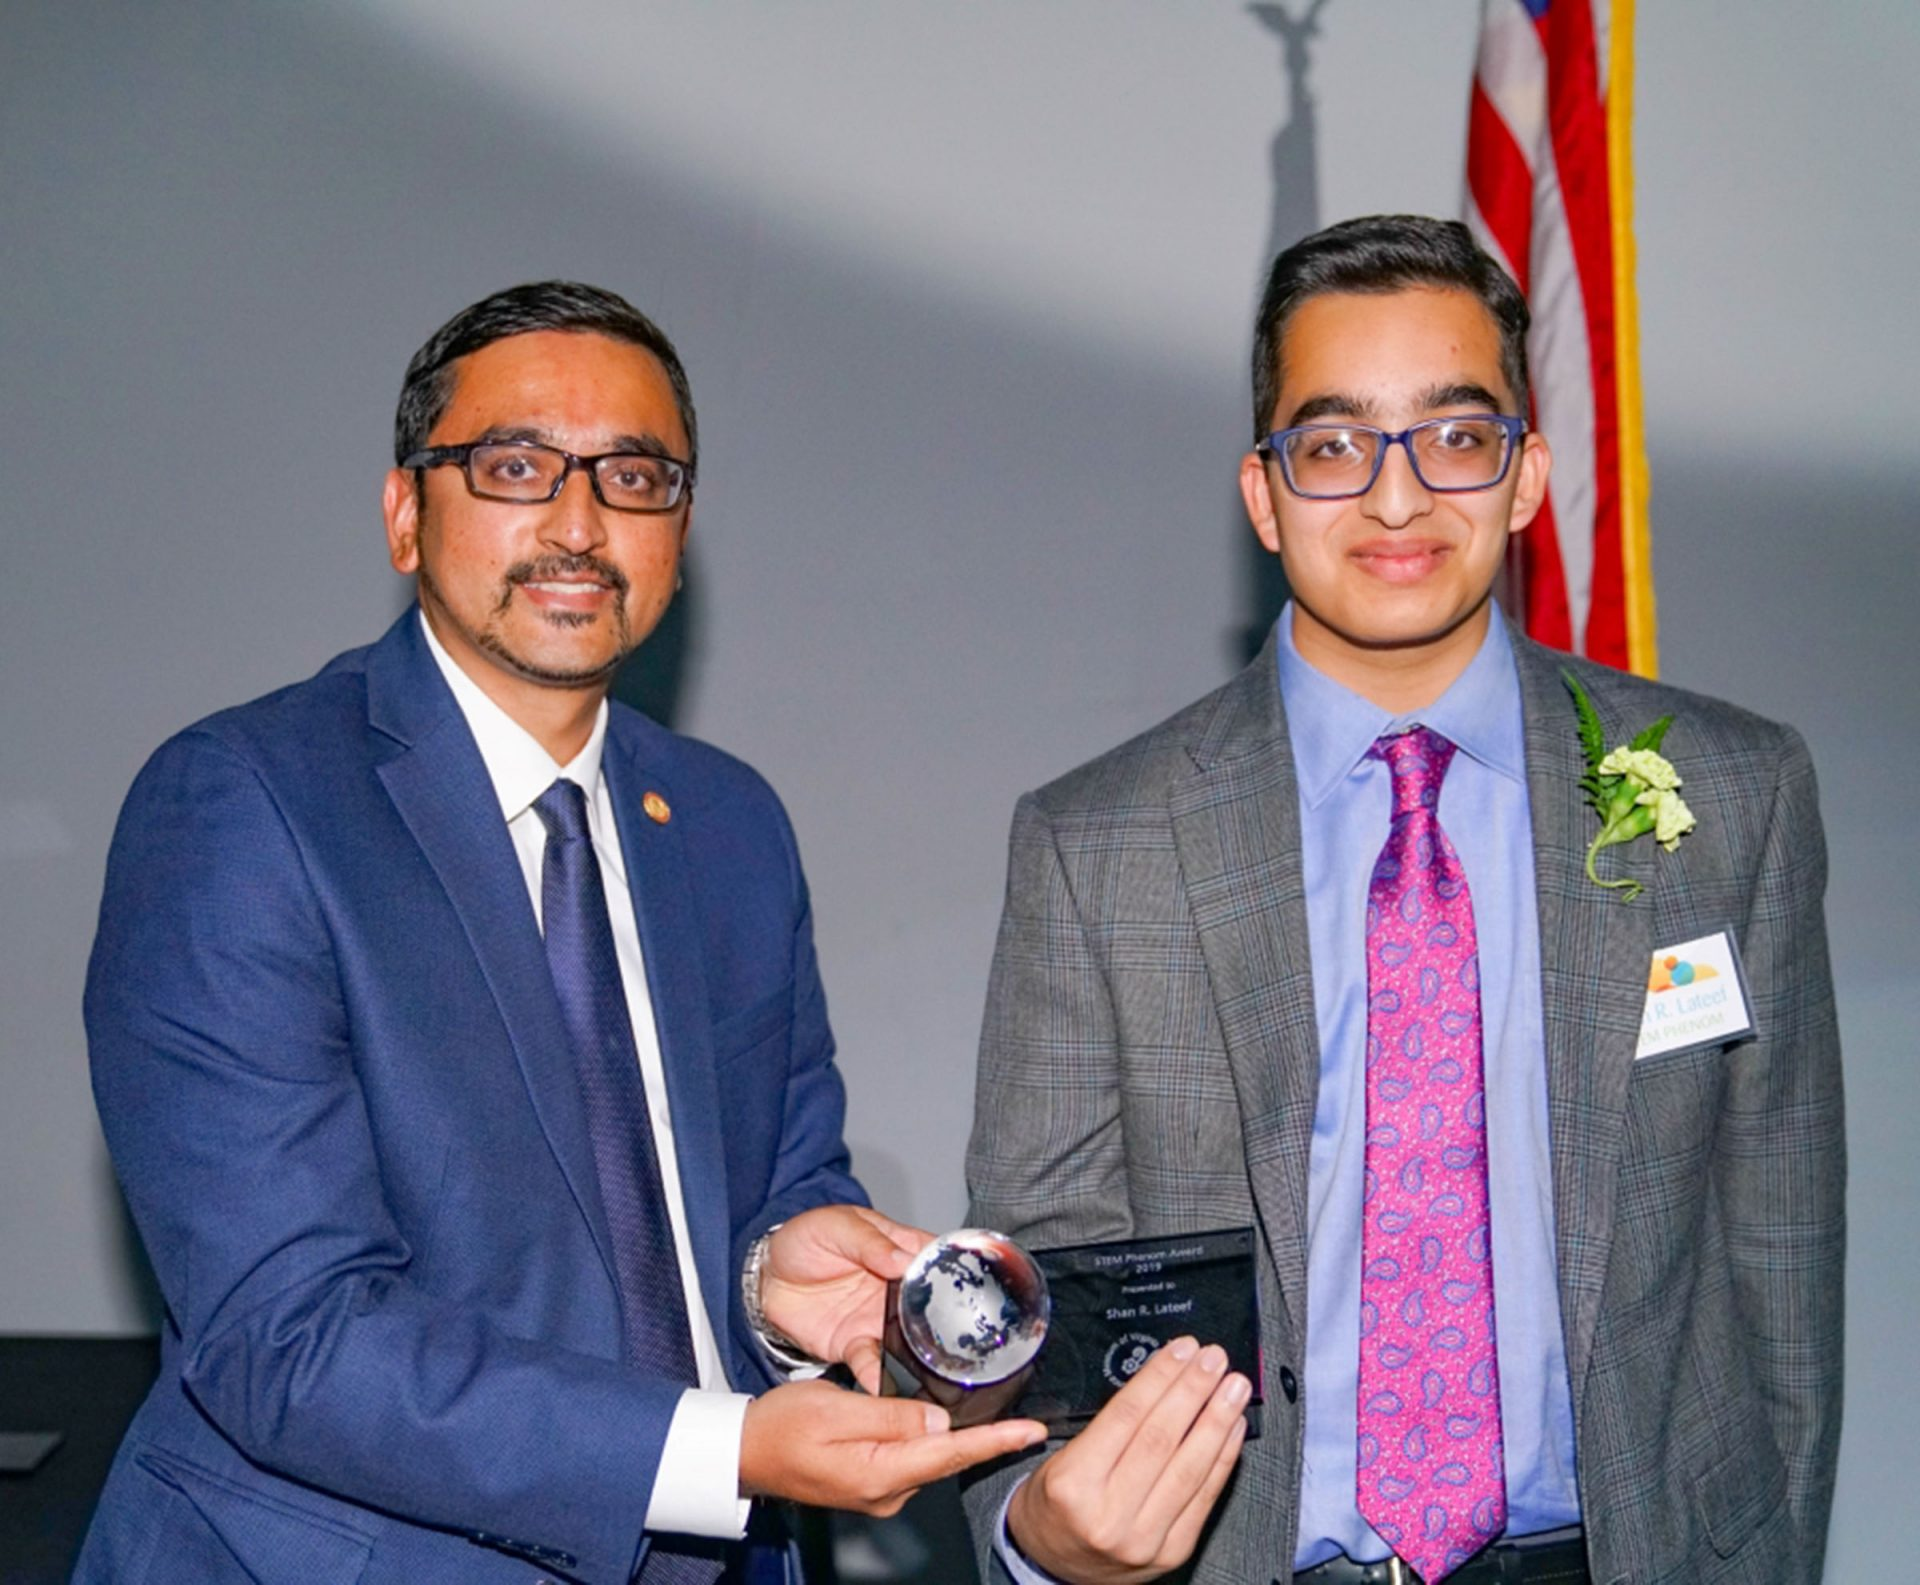 High school junior receives STEM award